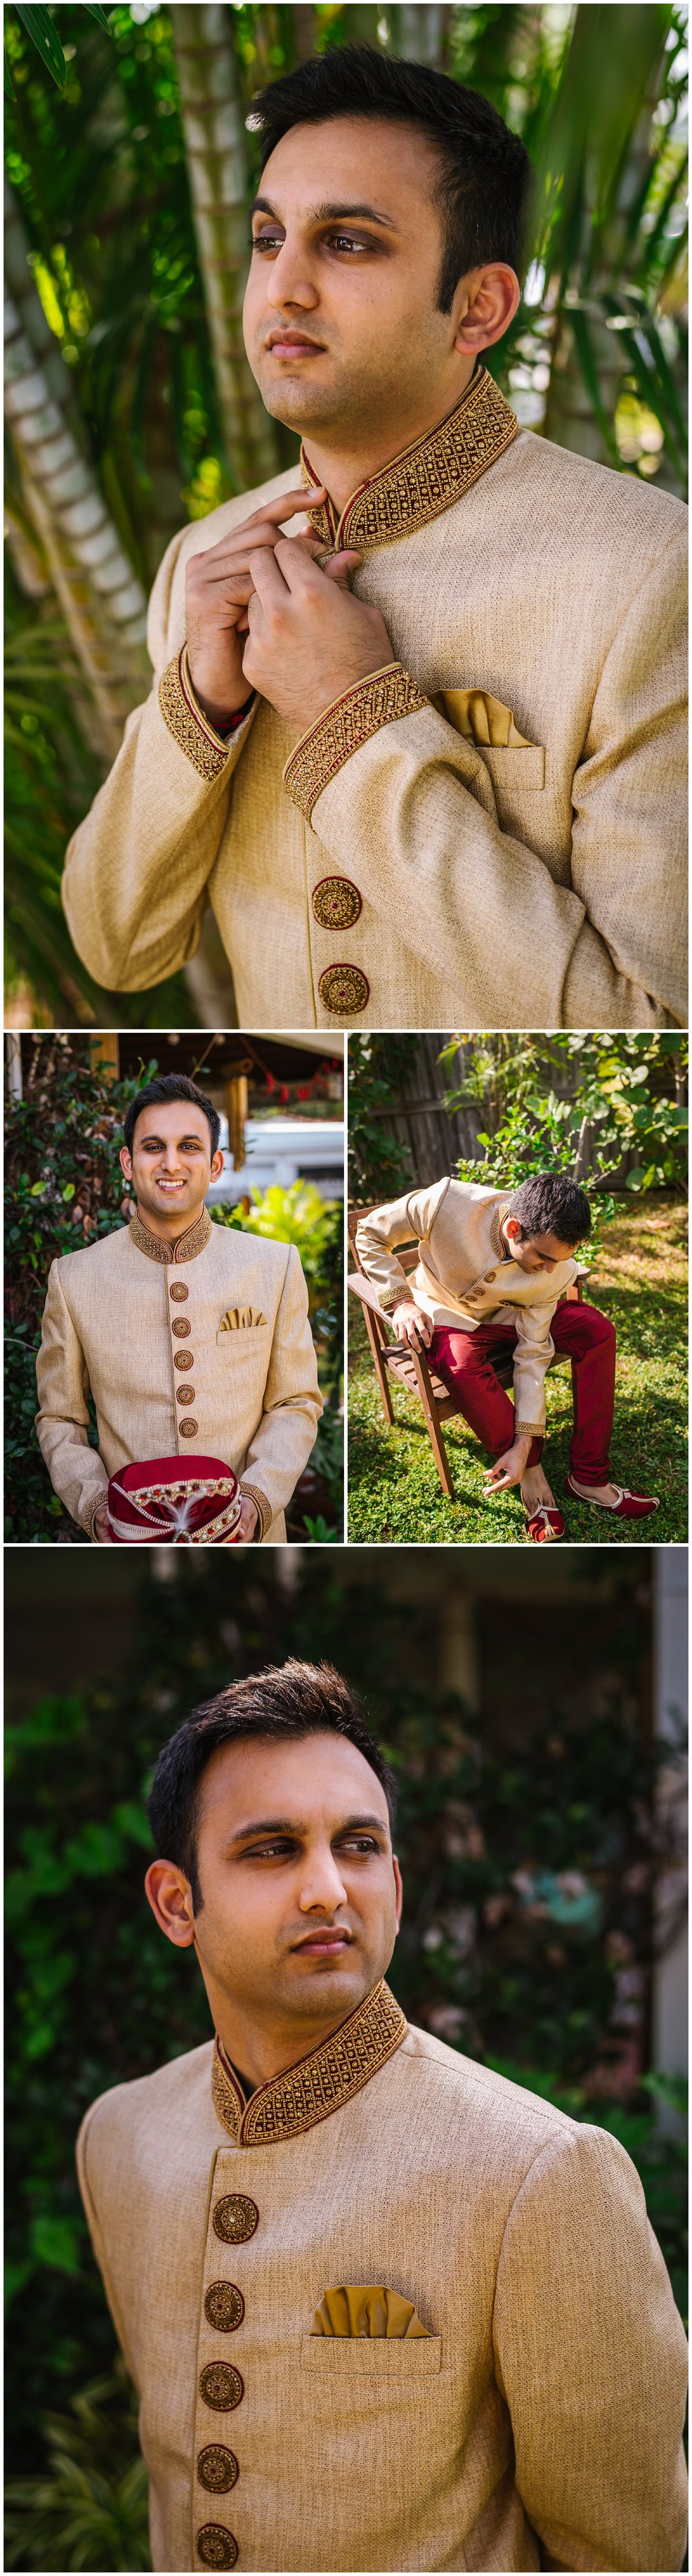 St-pete-indian-wedding-photographer-barat-sunken-gardens_0083.jpg